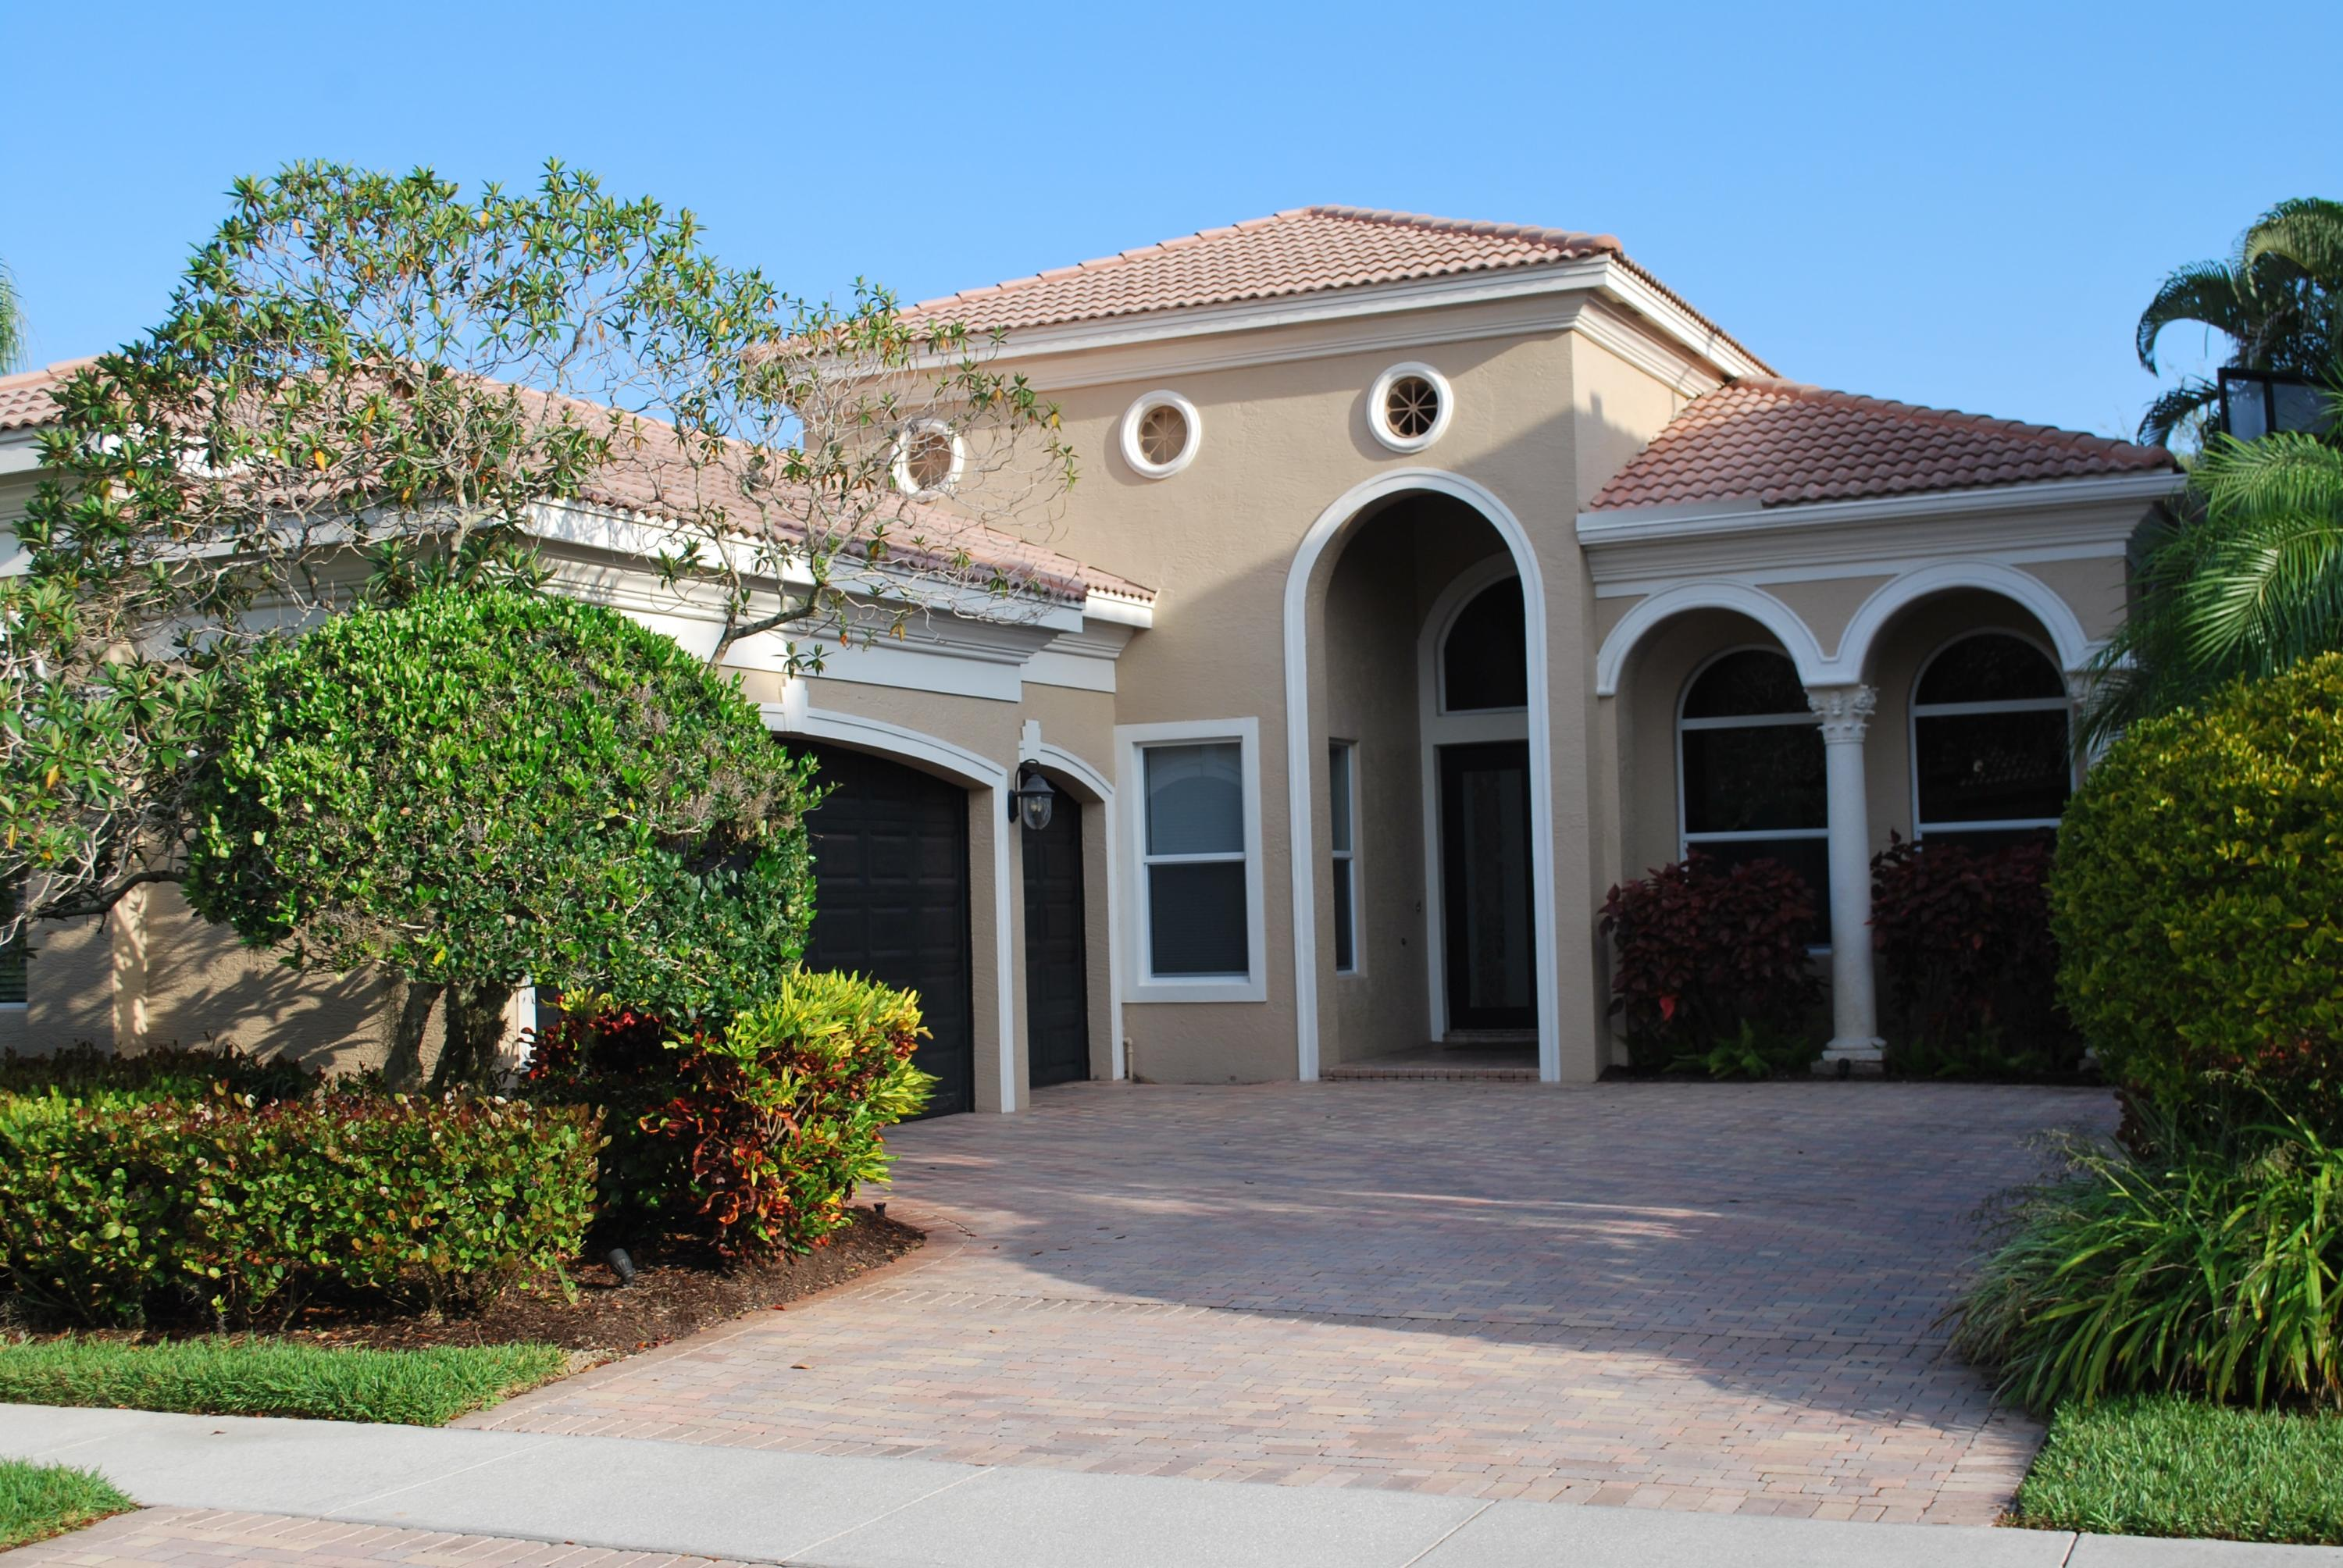 Mizner's Preserve offers a Gated Central PBC Location. A rated Schools and Morakami Elementary preferred. Newly renovated Clubhouse due to open by May+/-, Large Community Pool, Fitness Room, Tennis, and Playground. This single level Isabella Model features 3 bedrooms plus office (easy to convert to optional 4th bedroom), 3.5 bathrooms features a Whole House Backup Generator, partial Impact Windows, Large Travertine rear covered patio, Gas Stove Cooktop/Stainless Appliances, 3 car garage. This beautiful home is very spacious with an open floor plan and tons of natural light. Double door entry into a foyer leading to a formal living room/dining room. The Open concept kitchen overlooks a spacious family room & breakfast area. The large Master Suite has his/hers walk in closets- continued and luxurious master bathroom. The remaining bedrooms each have their bathroom.    Morikamil elementary preferred, Omni Middle, and Spanish River Schools.  Newer AC units & Water Heater.  Easy drive to Beaches, 95, and Turnpike.  Easy walk to Publix, Starbucks, Restaurants, and Morikami Gardens/County Park.